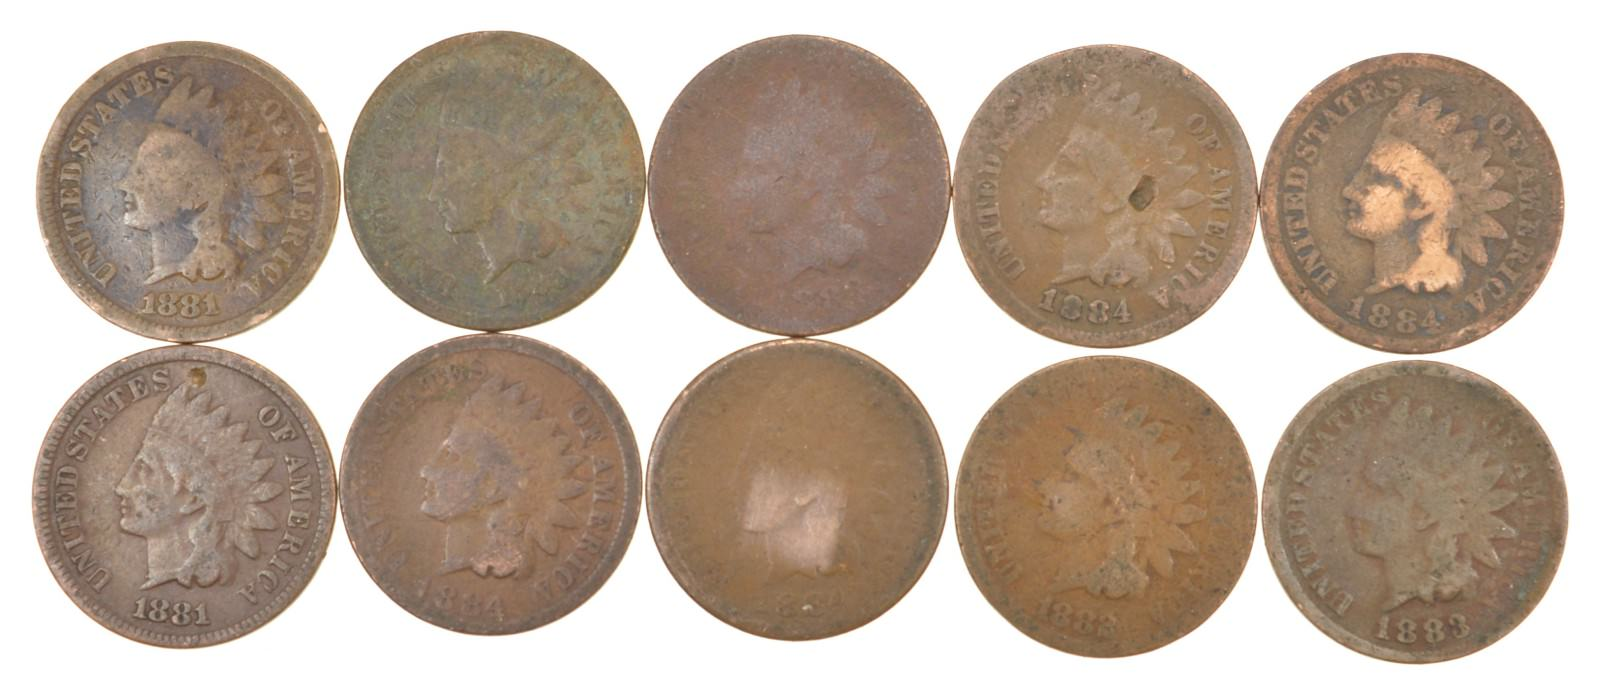 Lot of 10 1800's 1880-1889 Indian Head Penny Cents - US Coin